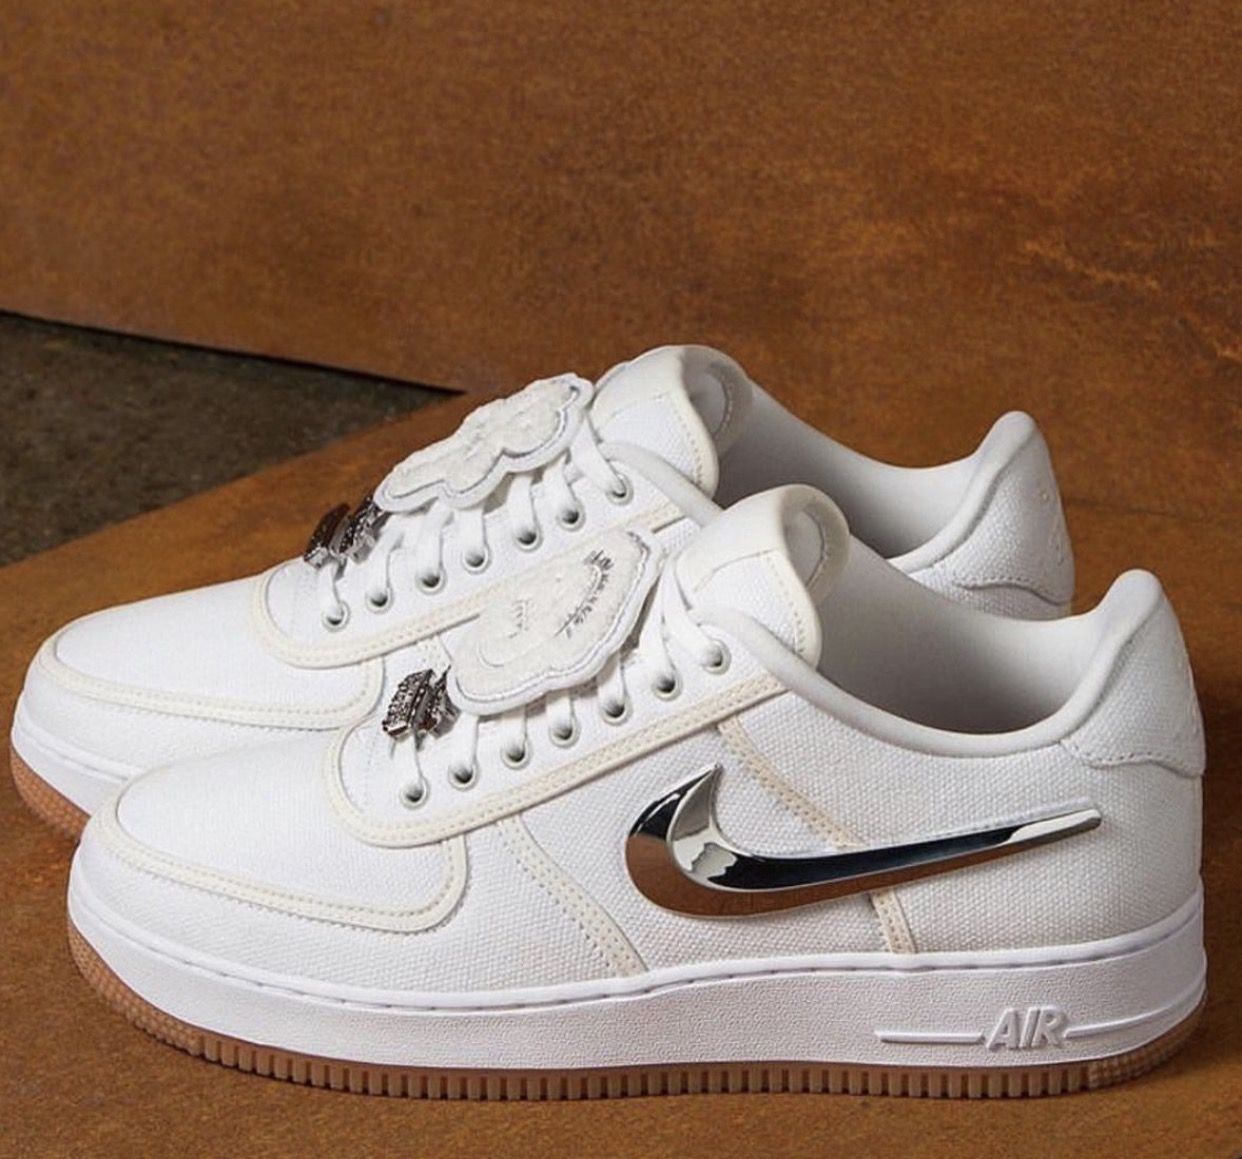 nike air force 1 femme travis scott